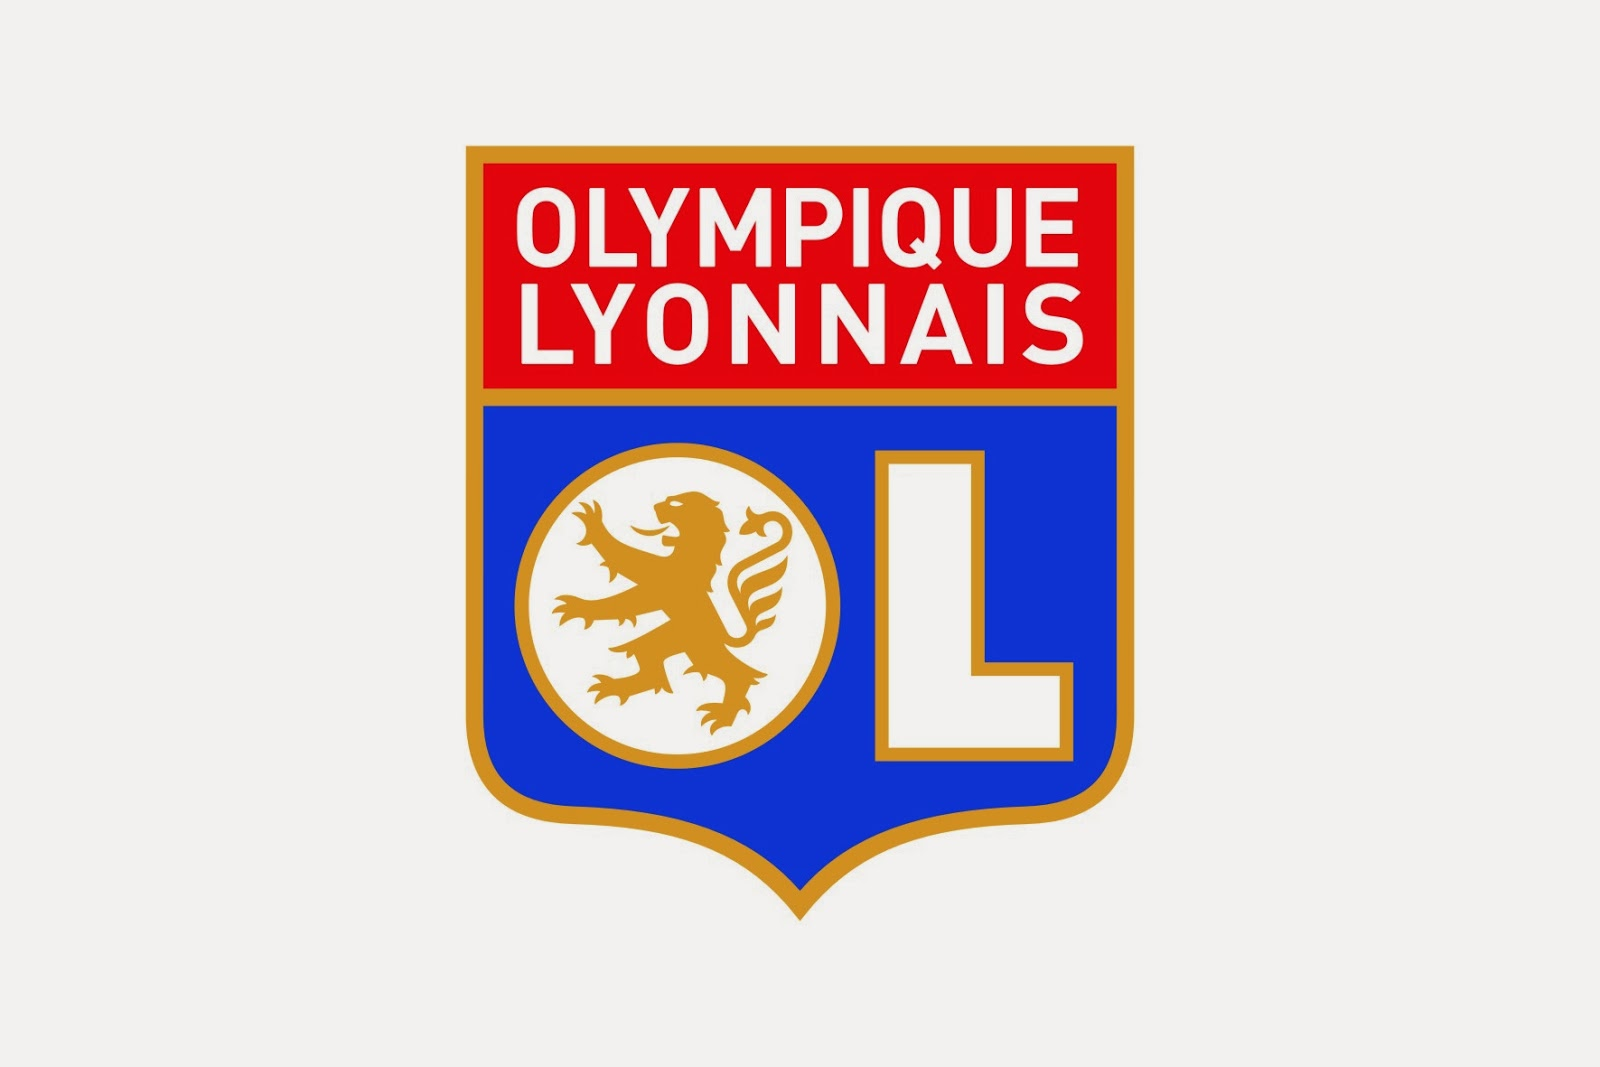 olympique lyonnais logo logo share london subway logo vector subway logo vector art